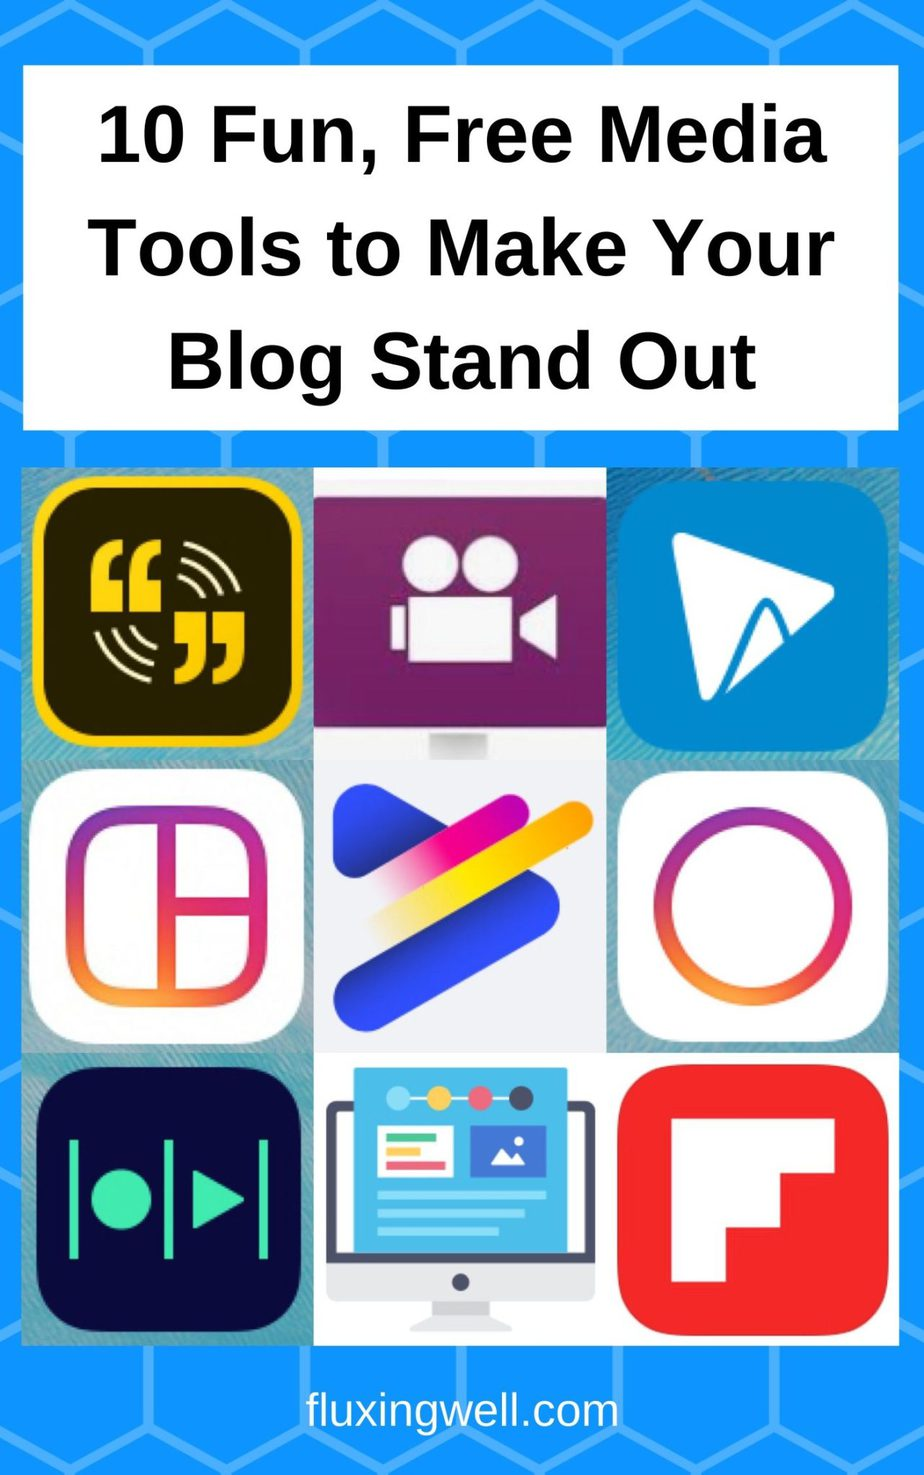 10 Fun, Free Media Tools to Make Your Blog Stand Out jpg